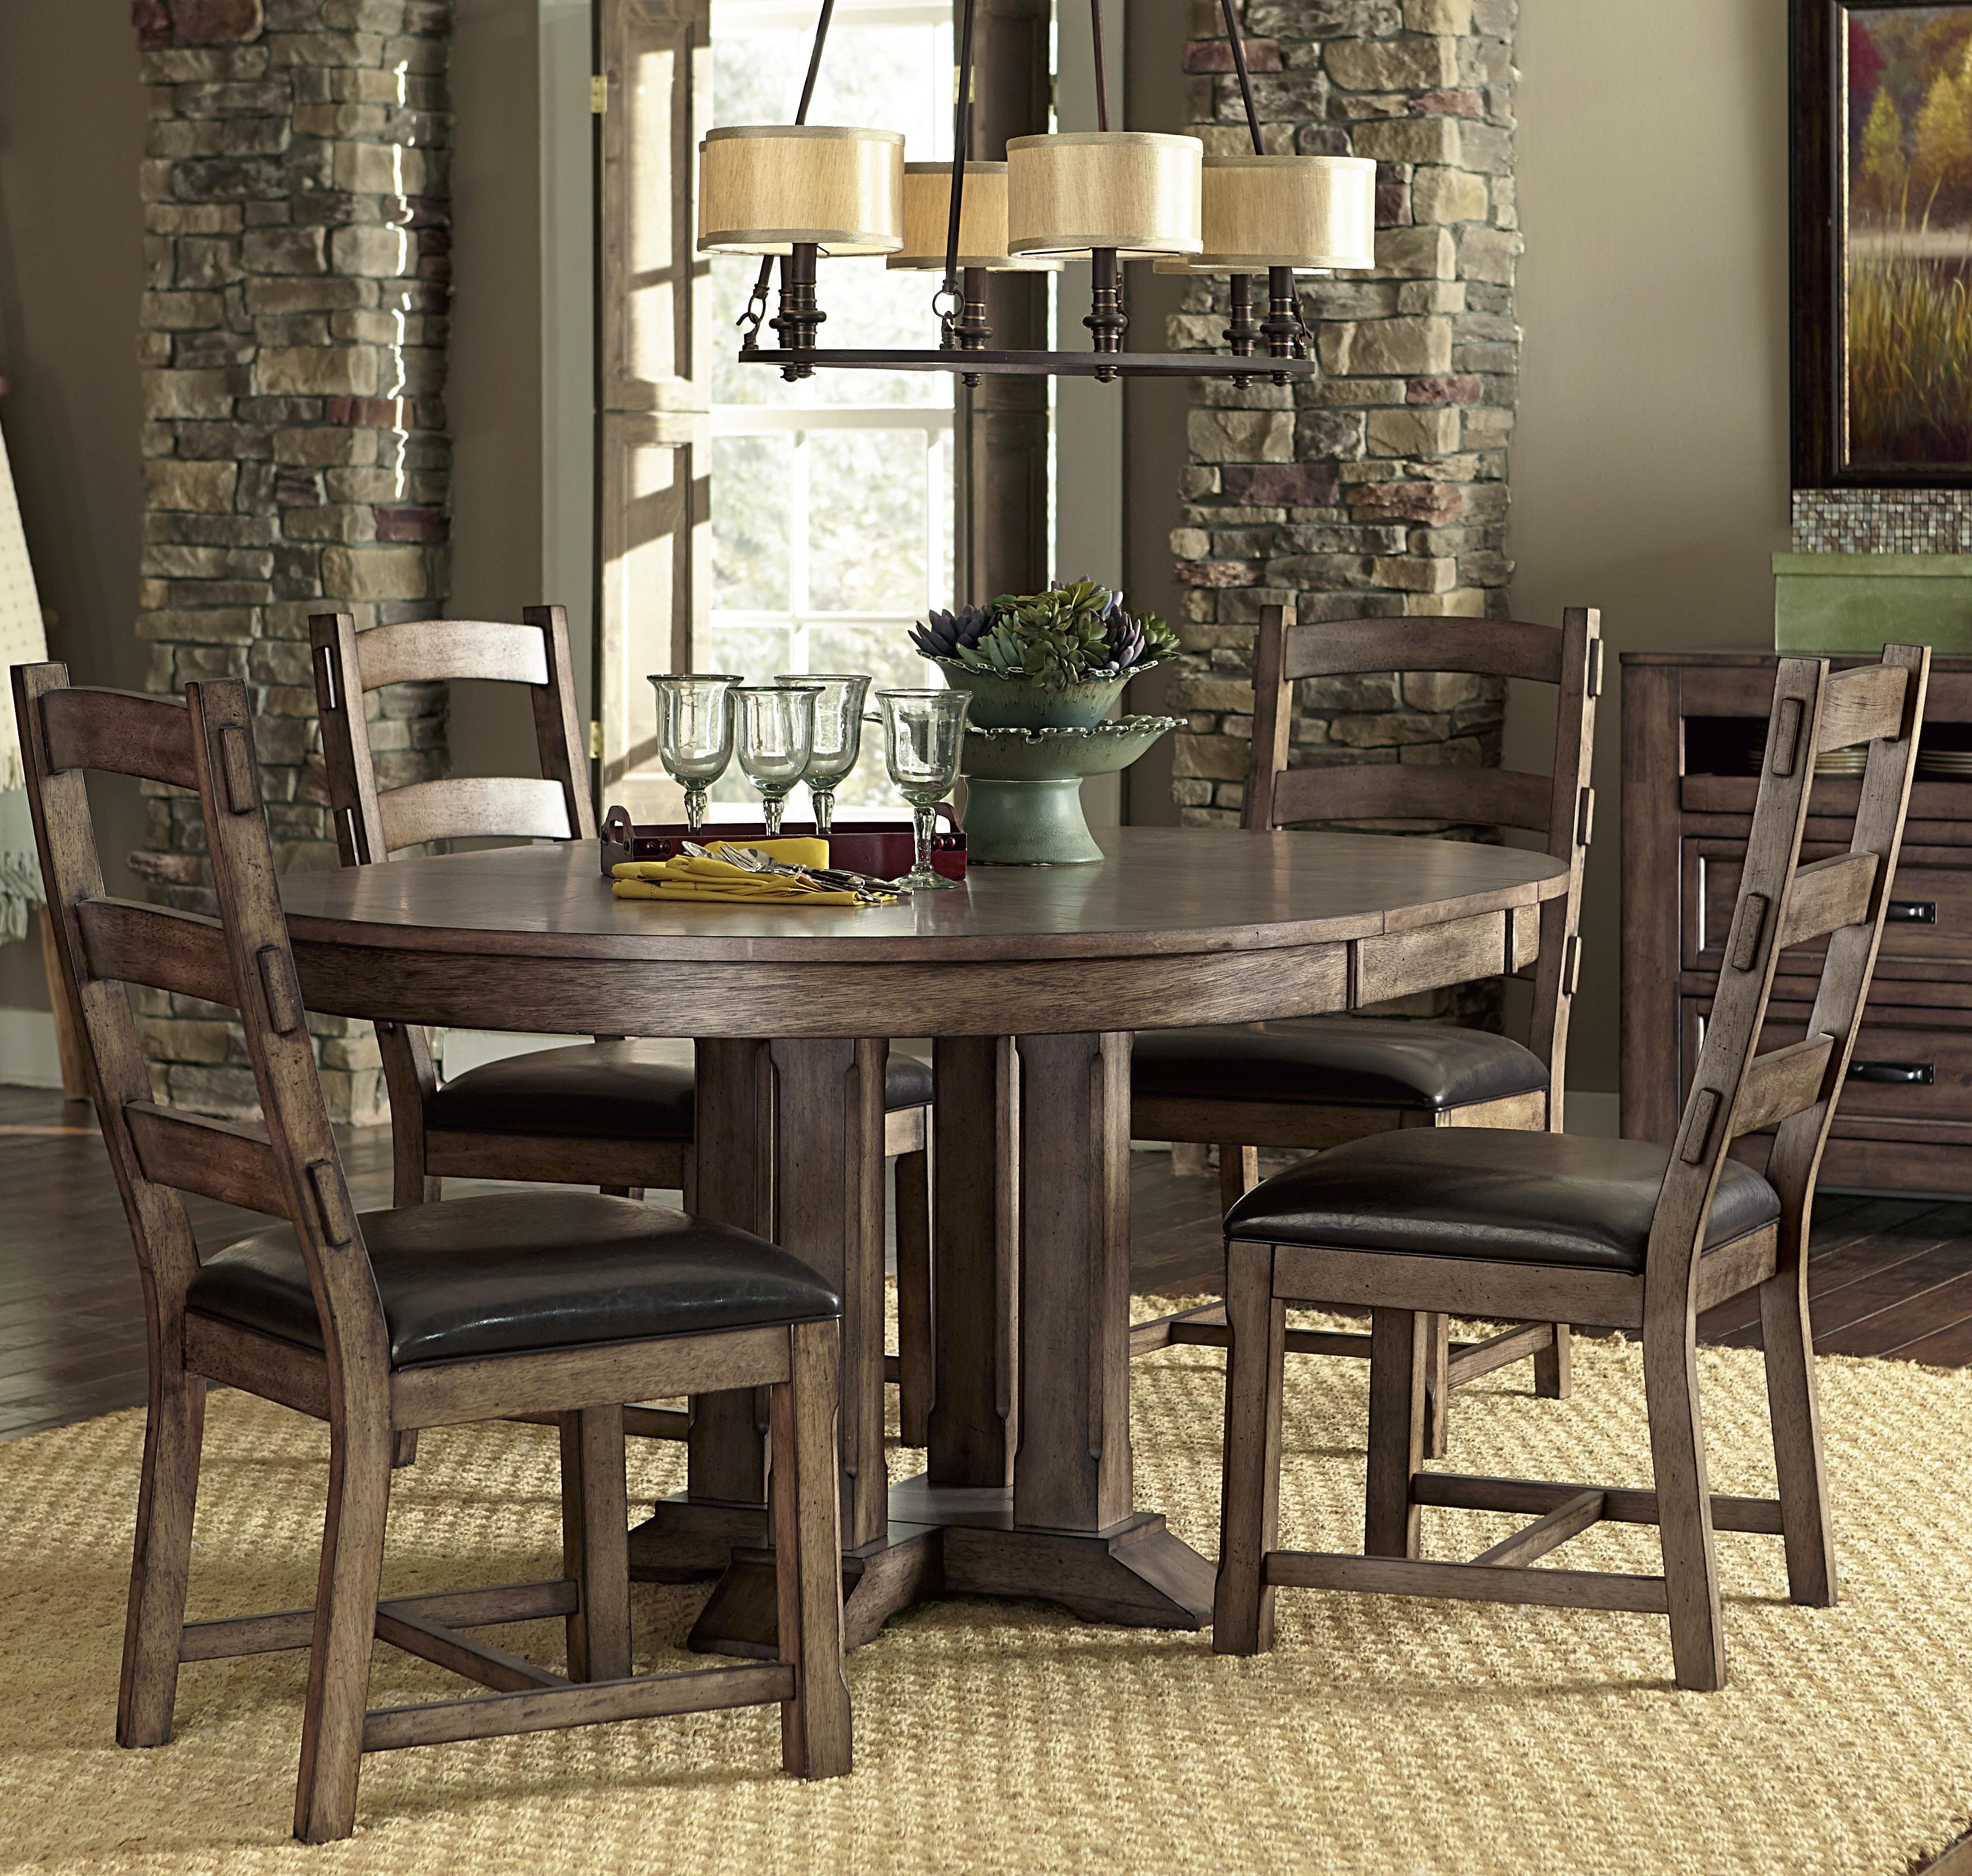 Progressive Furniture Boulder Creek Dining Table and Chair Set - Item Number: P849-10B+10T+4x61